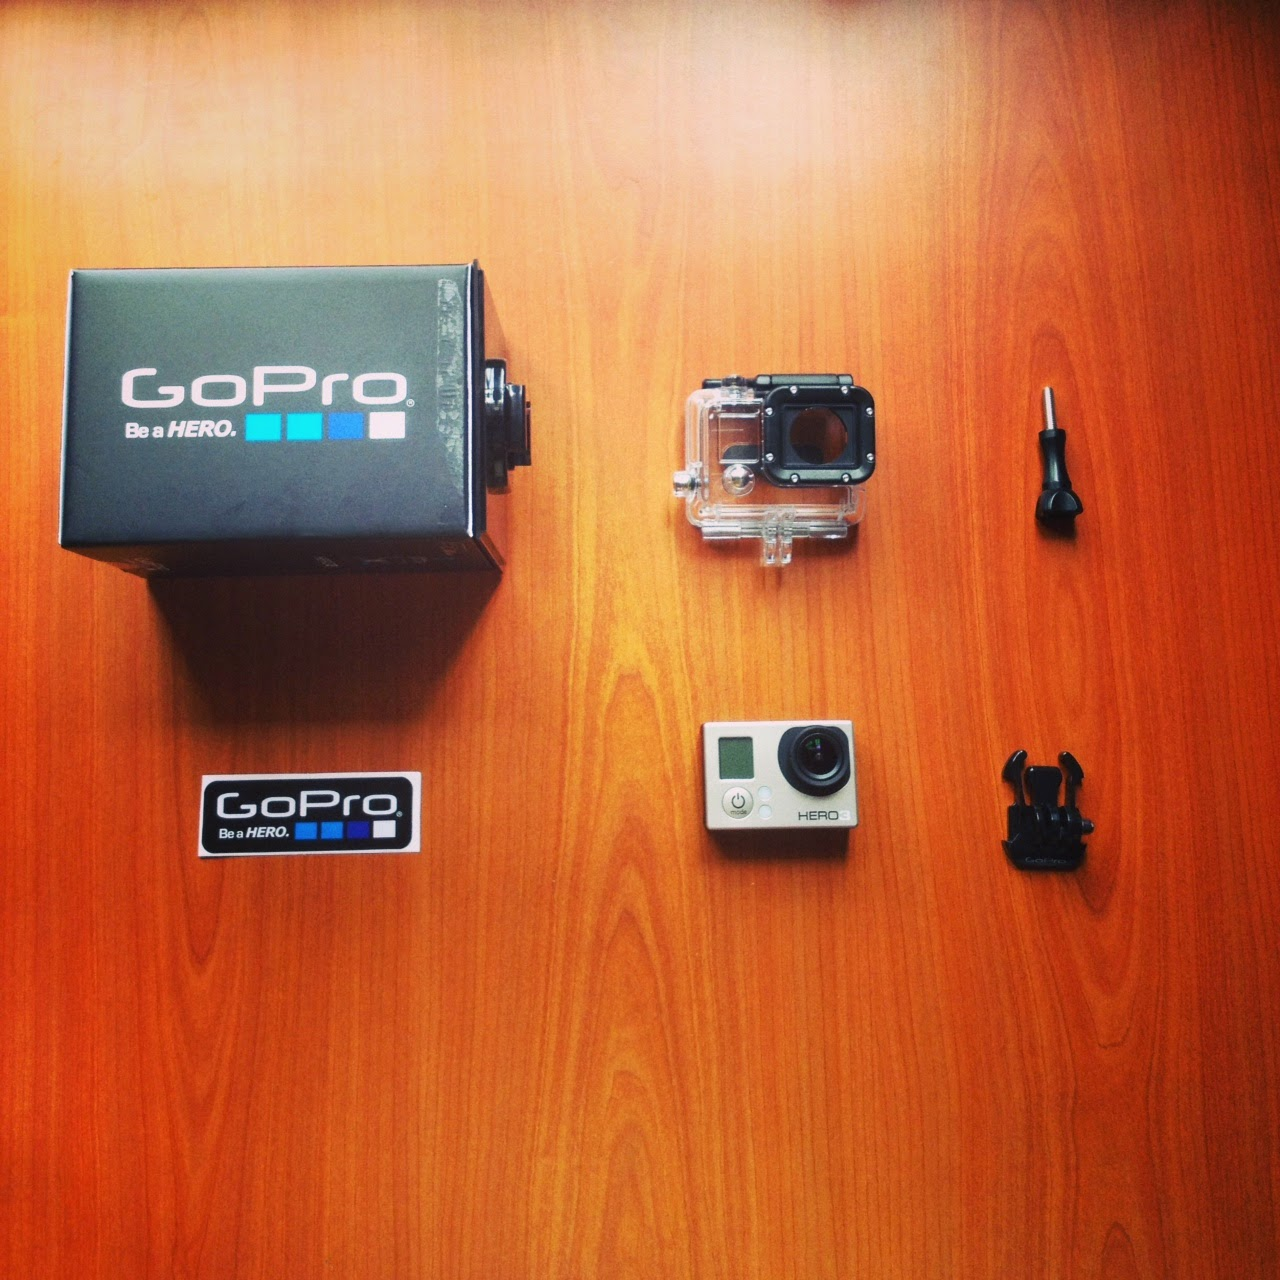 JUST BOUGHT A GOPRO HERO 3 !!!